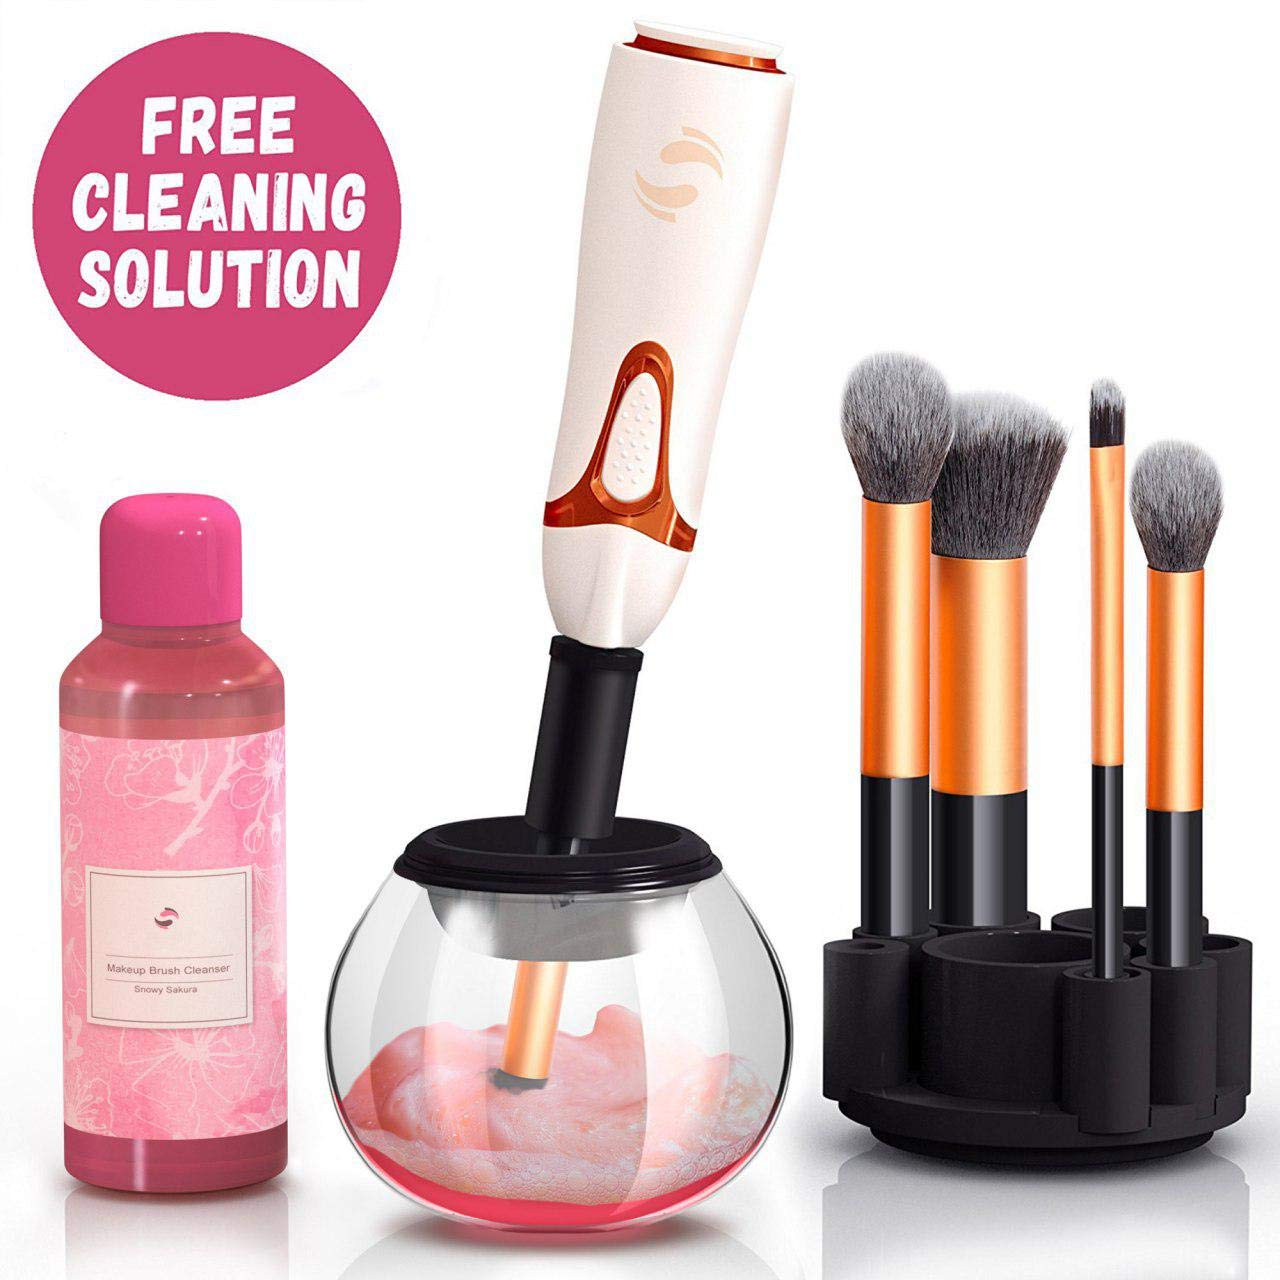 BeUniqueToday Professional Makeup Brush Cleaner - Automatic Spin Makeup Brush Cleaner Dryer Machine - Bonus Cleaning Solution